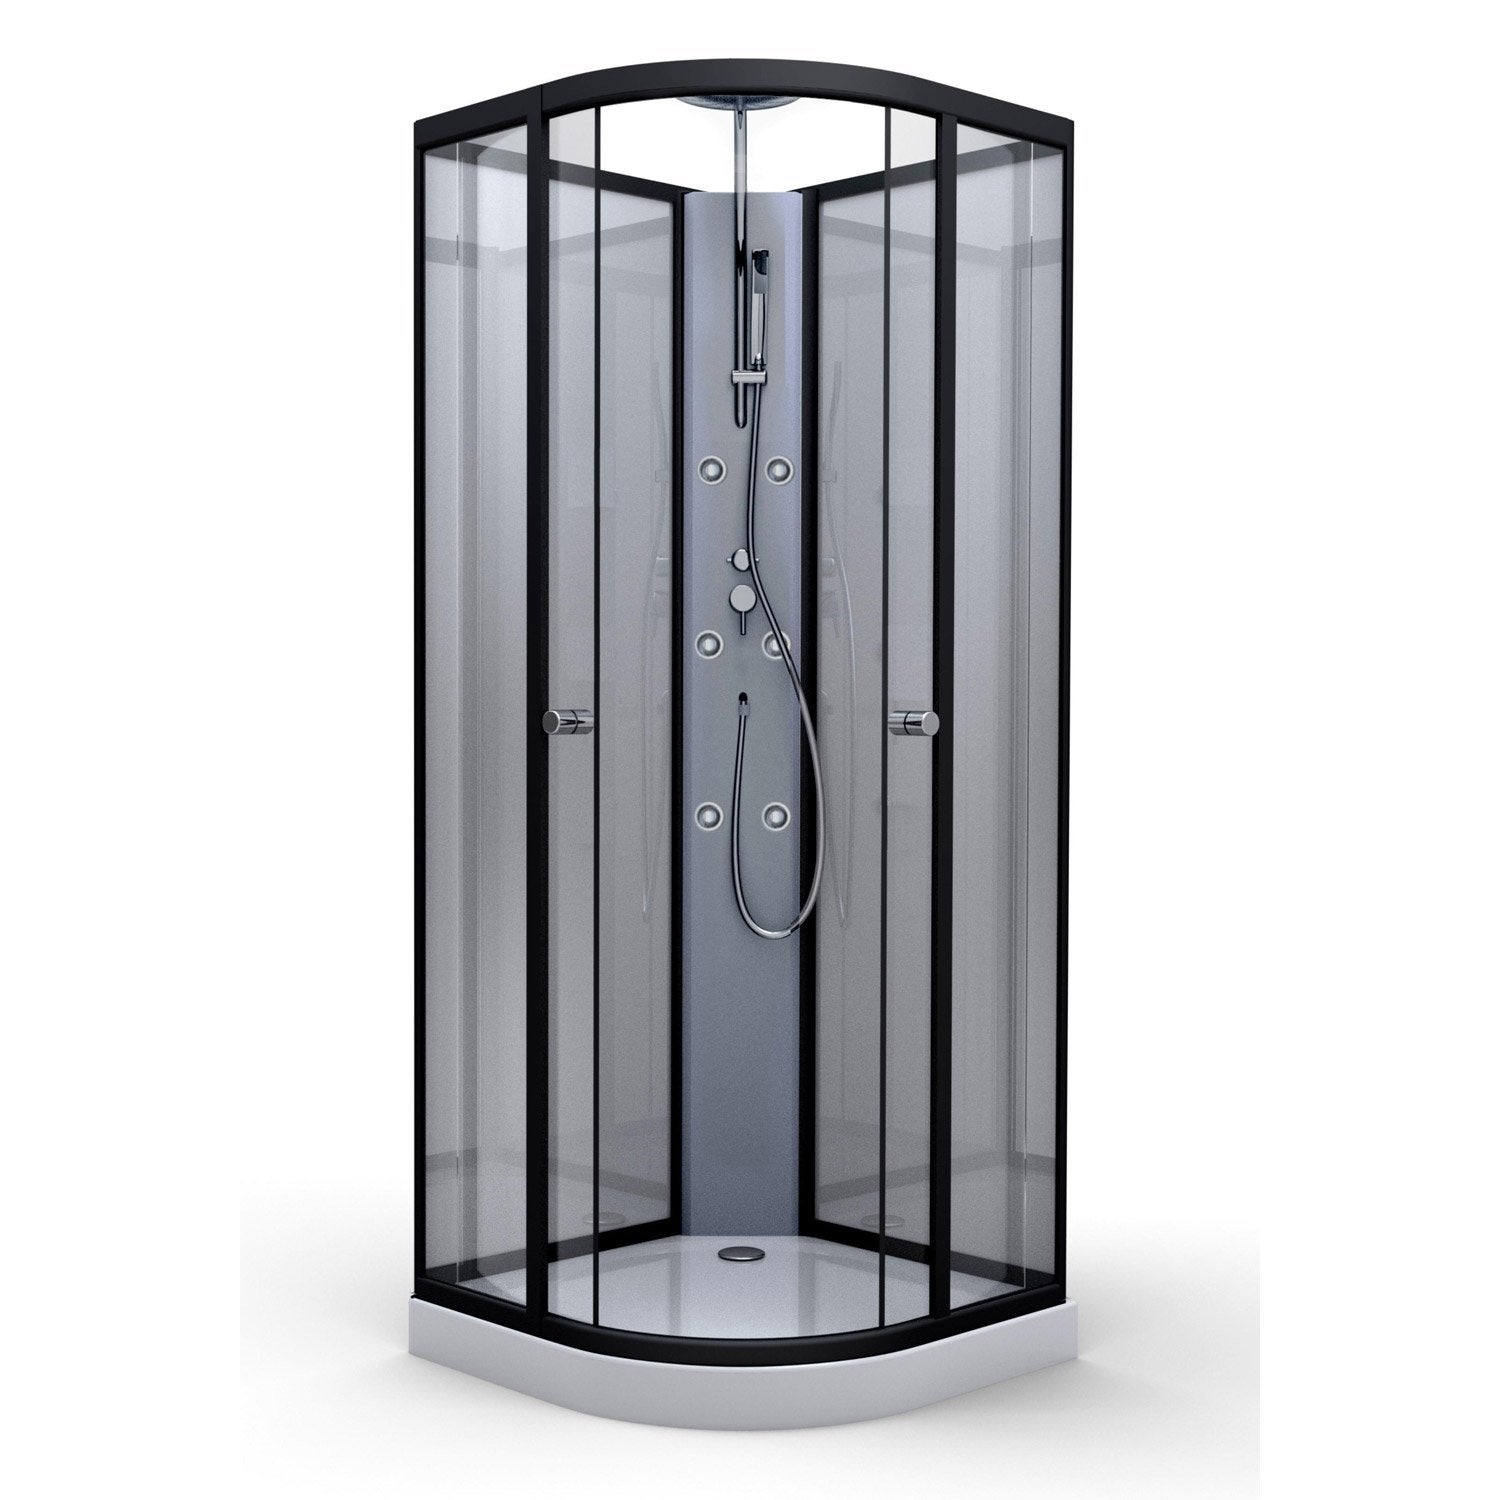 cabine de douche 1 4 de cercle x cm carlton leroy merlin. Black Bedroom Furniture Sets. Home Design Ideas